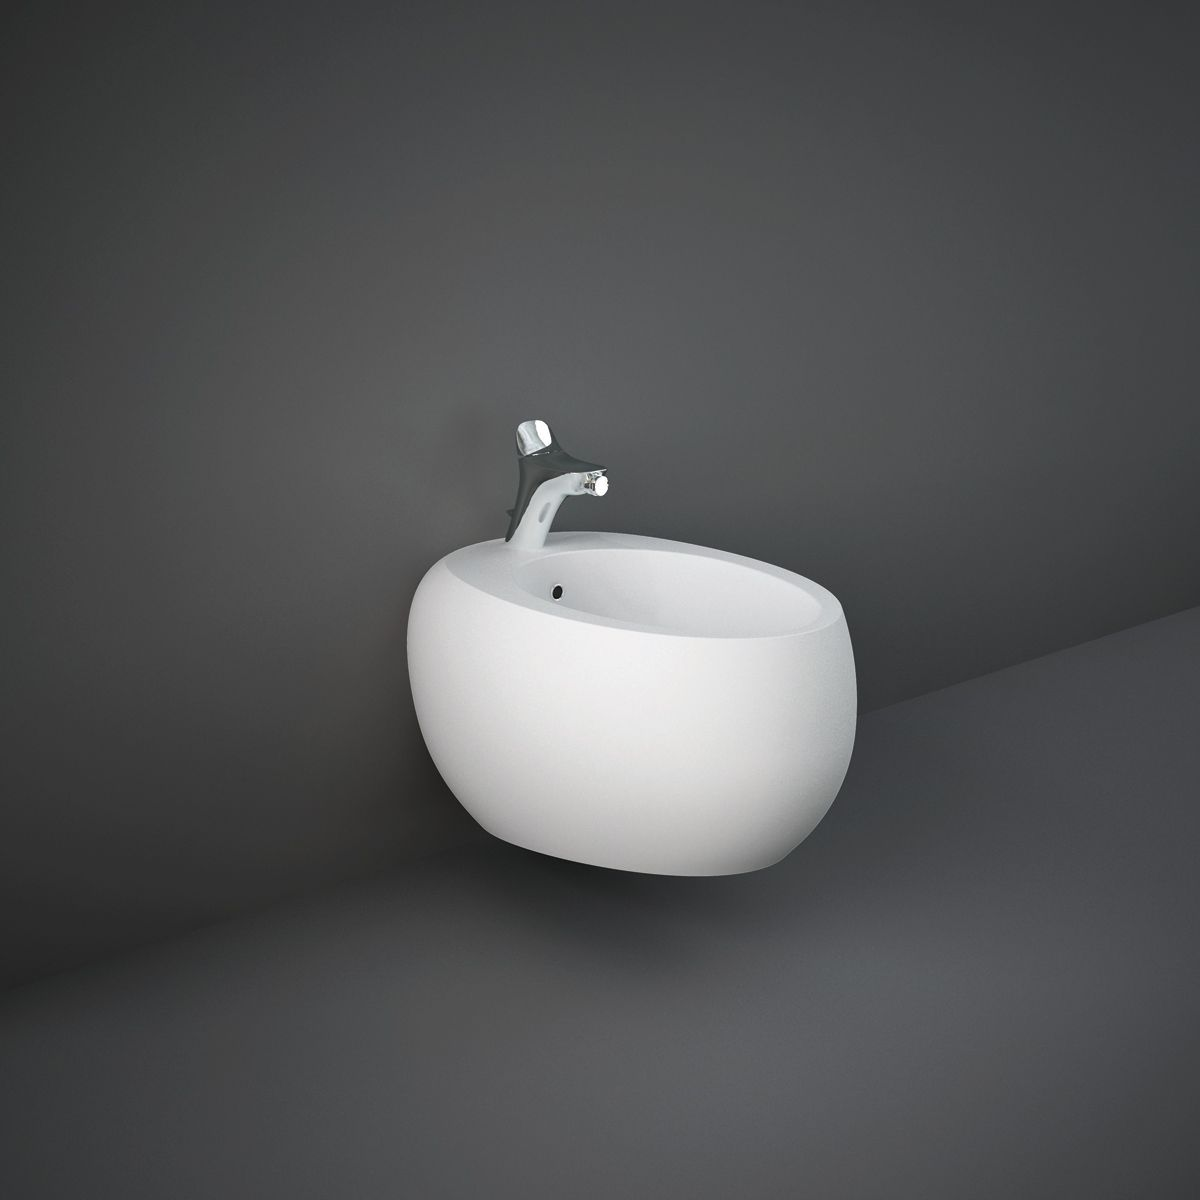 RAK Cloud Matt White Wall Hung Bidet